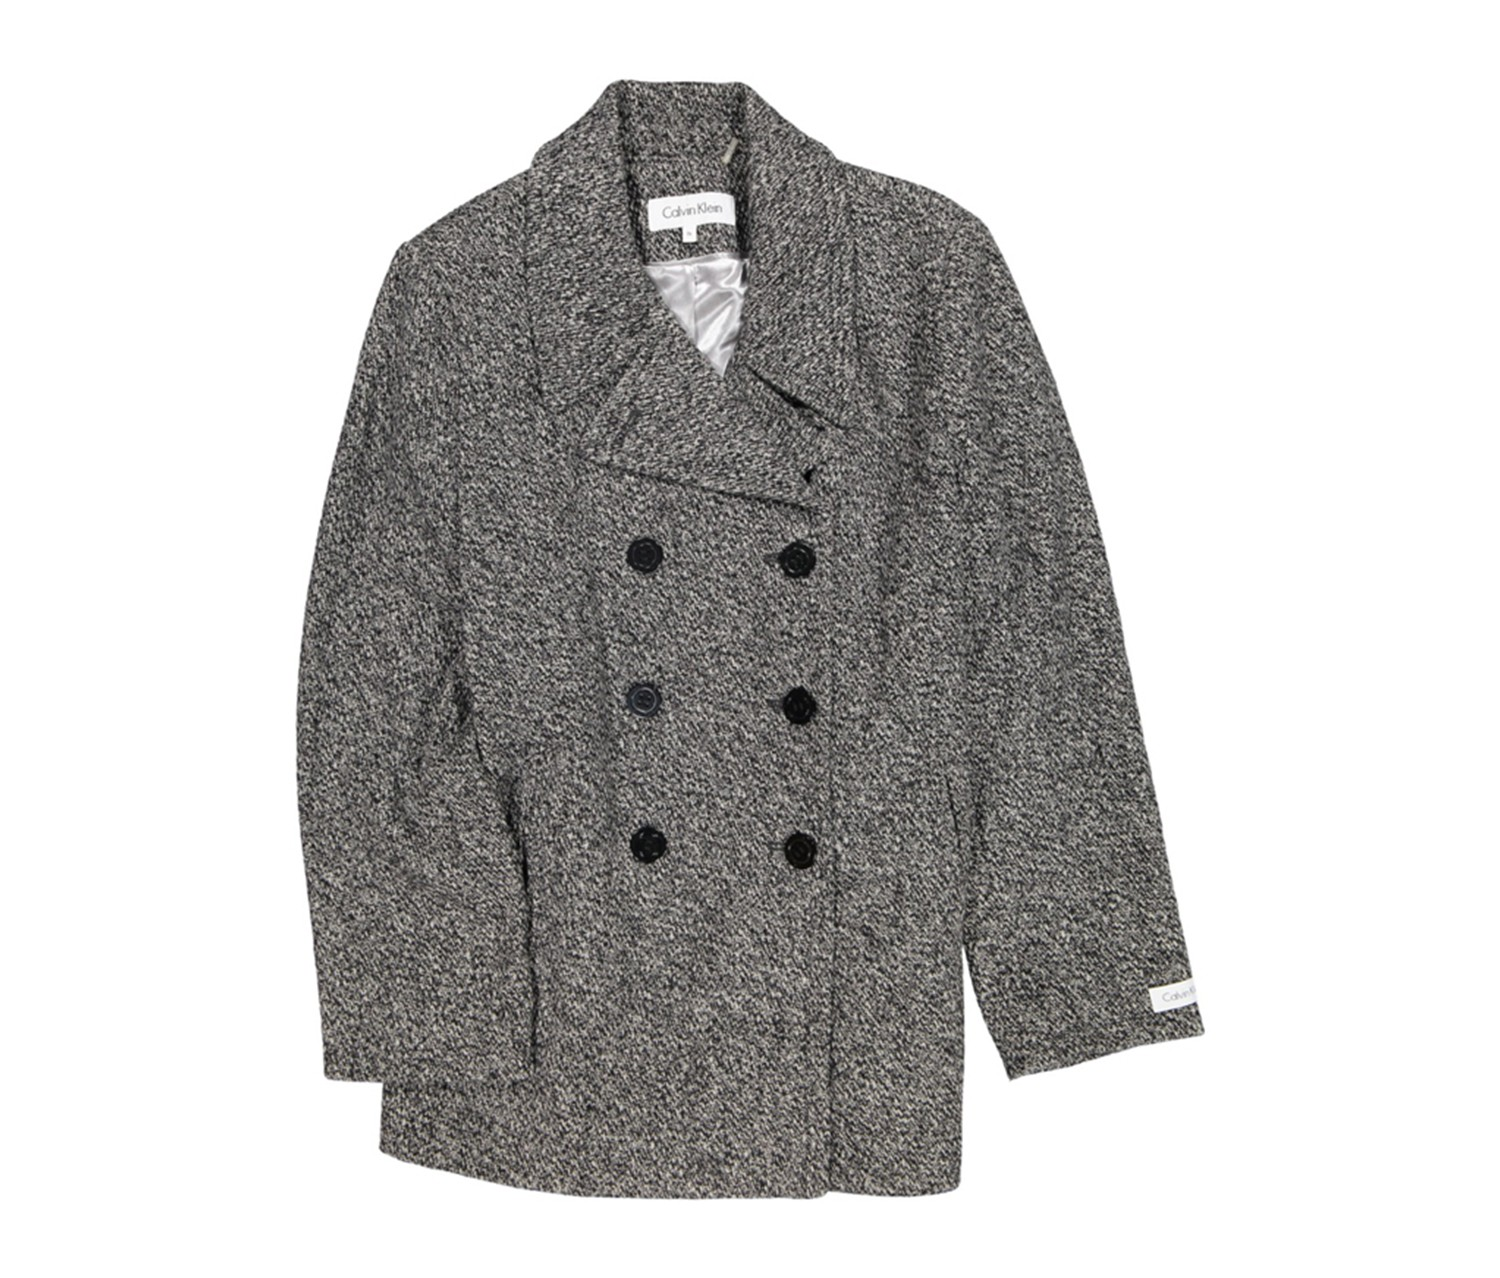 Double Breasted Peacoat, Black/White